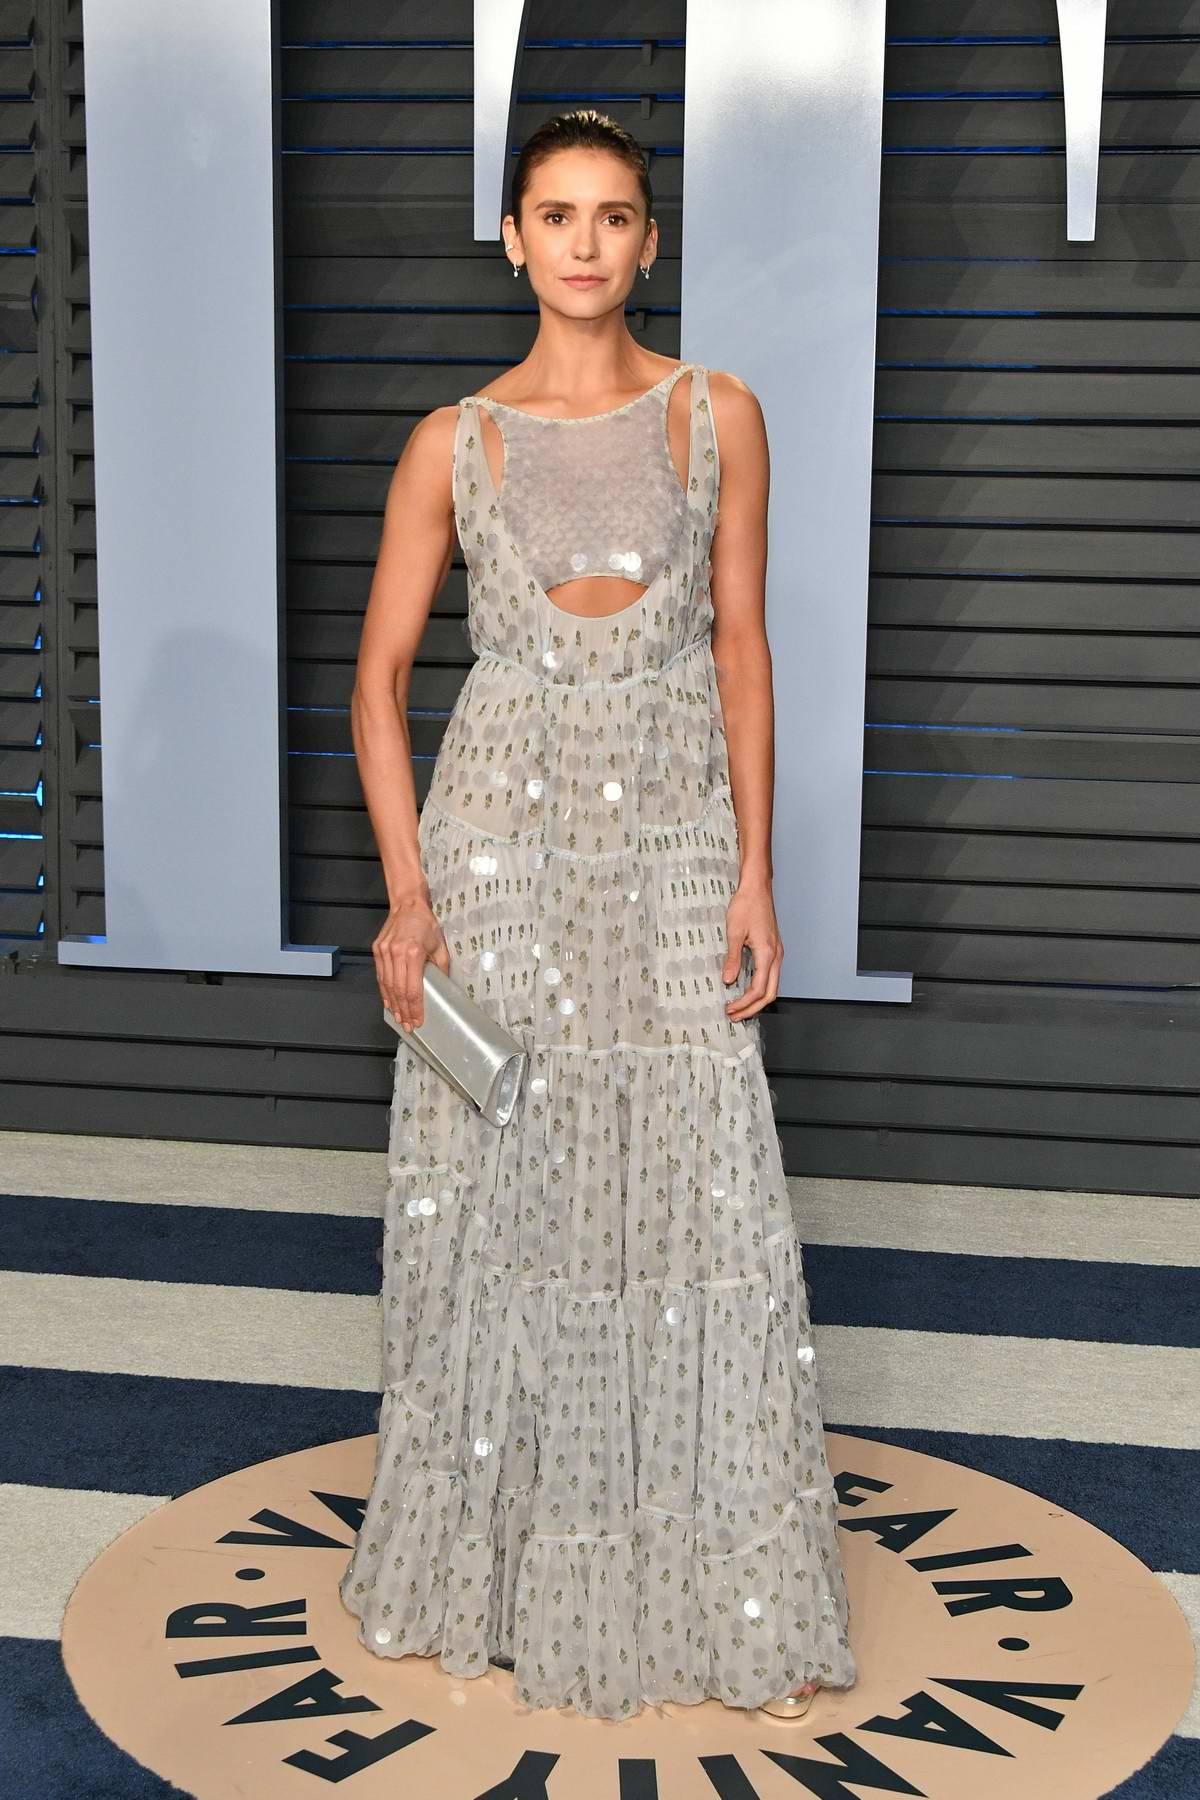 Nina Dobrev attends 2018 Vanity Fair Oscar Party at the Wallis Annenberg Center for the Performing Arts in Beverly Hills, Los Angeles